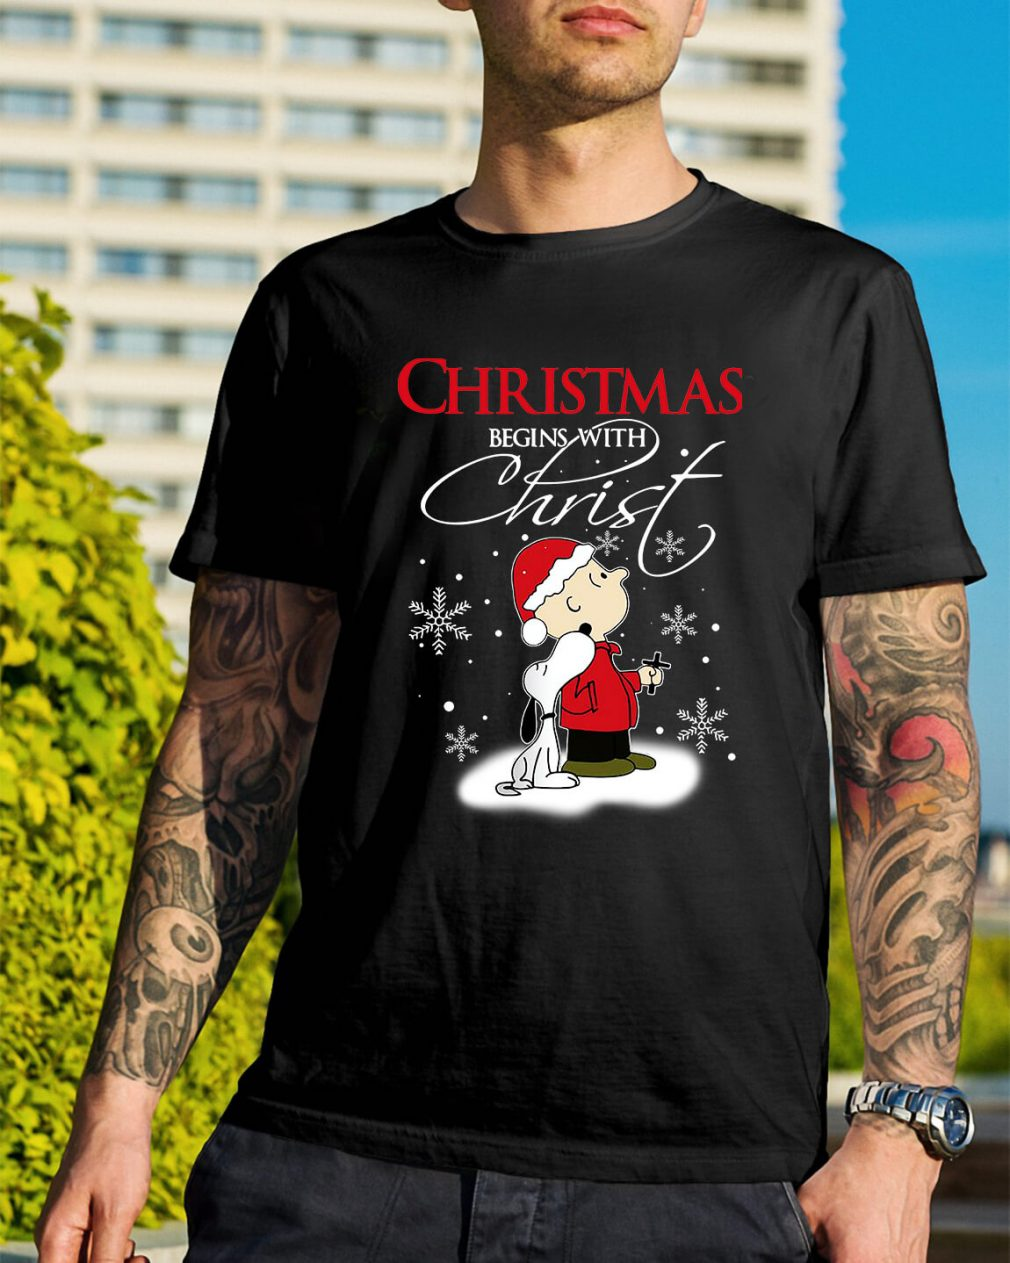 Snoopy and Charlie Christmas begin with Christ Guys Shirt